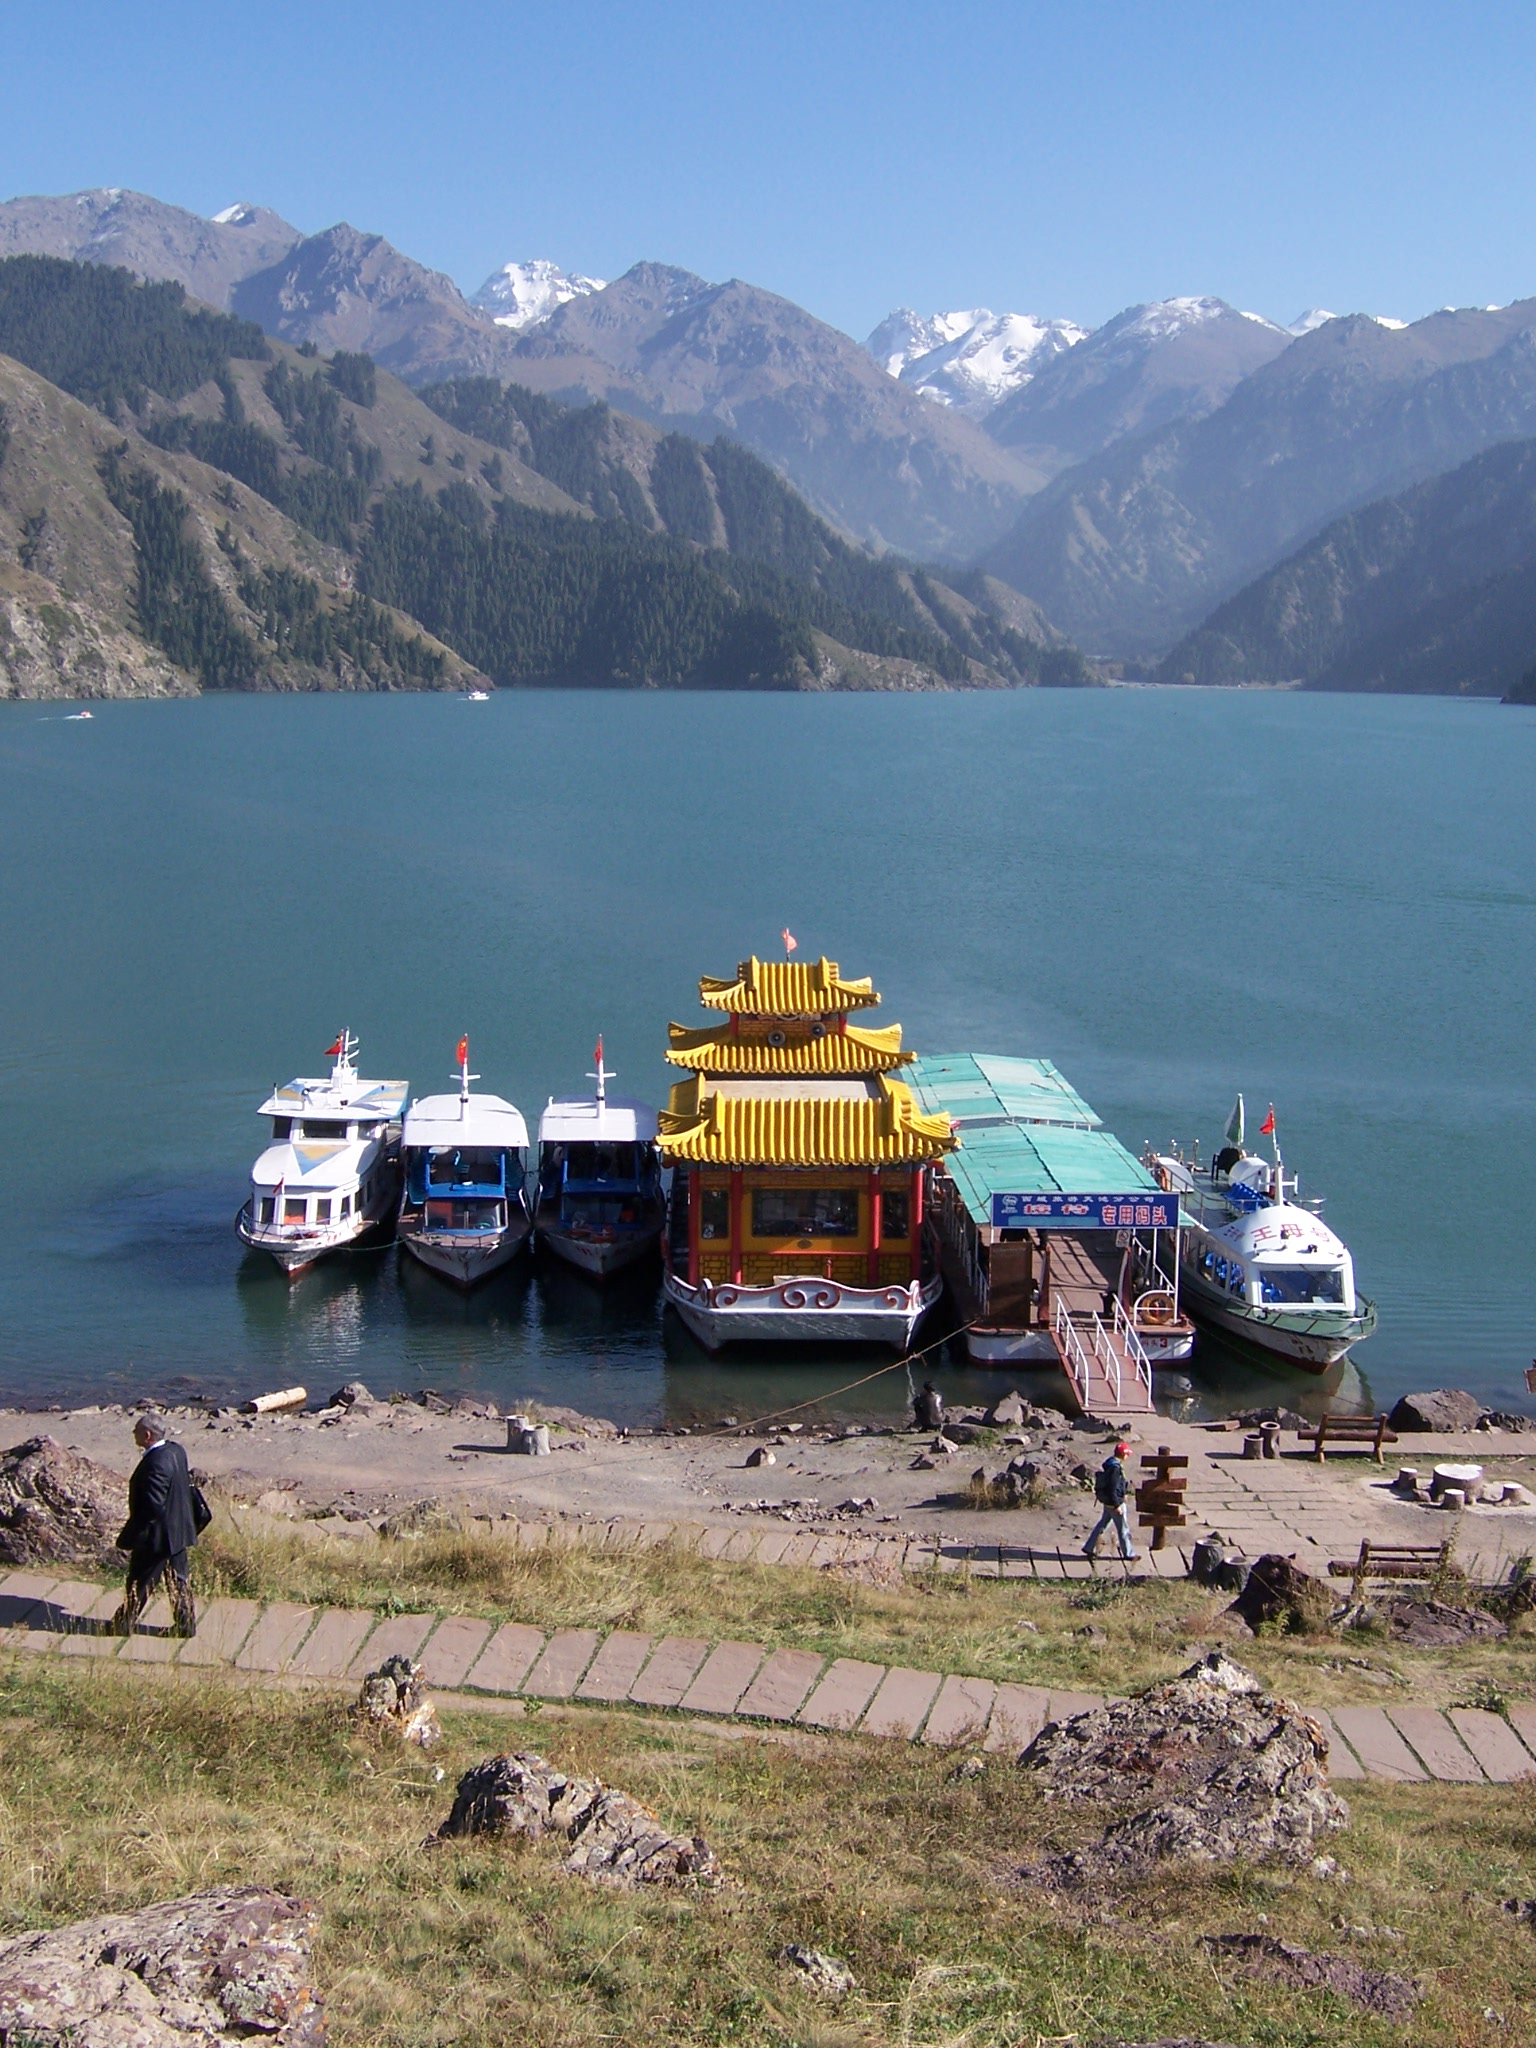 Scene of mountains, lake, and boats in China